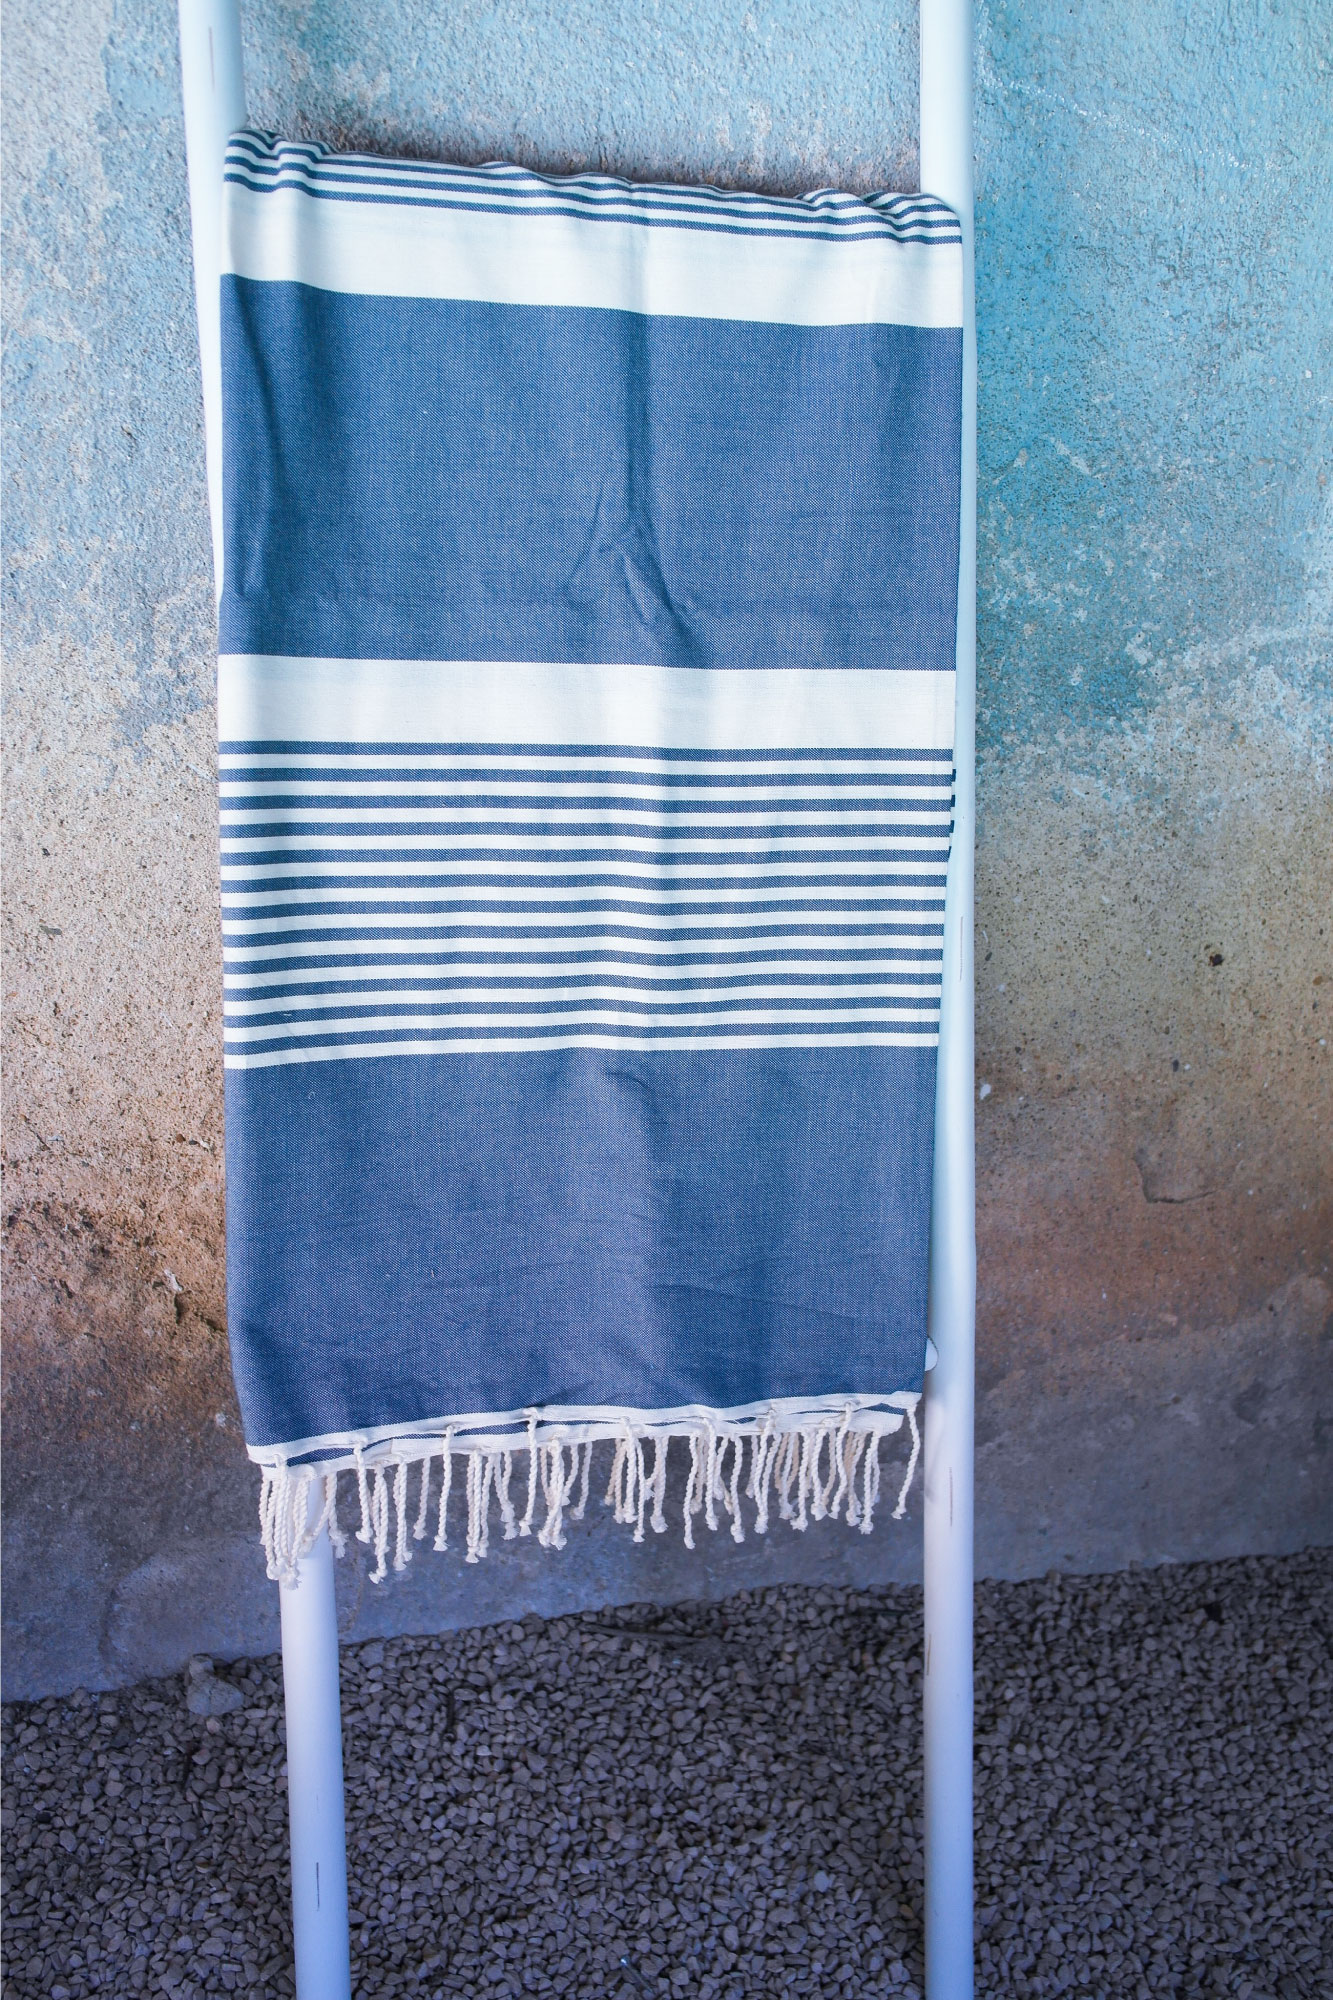 fouta double jet canap tissage plat bleu jean 2m x 3m artisanat by sous les pav s la plage. Black Bedroom Furniture Sets. Home Design Ideas